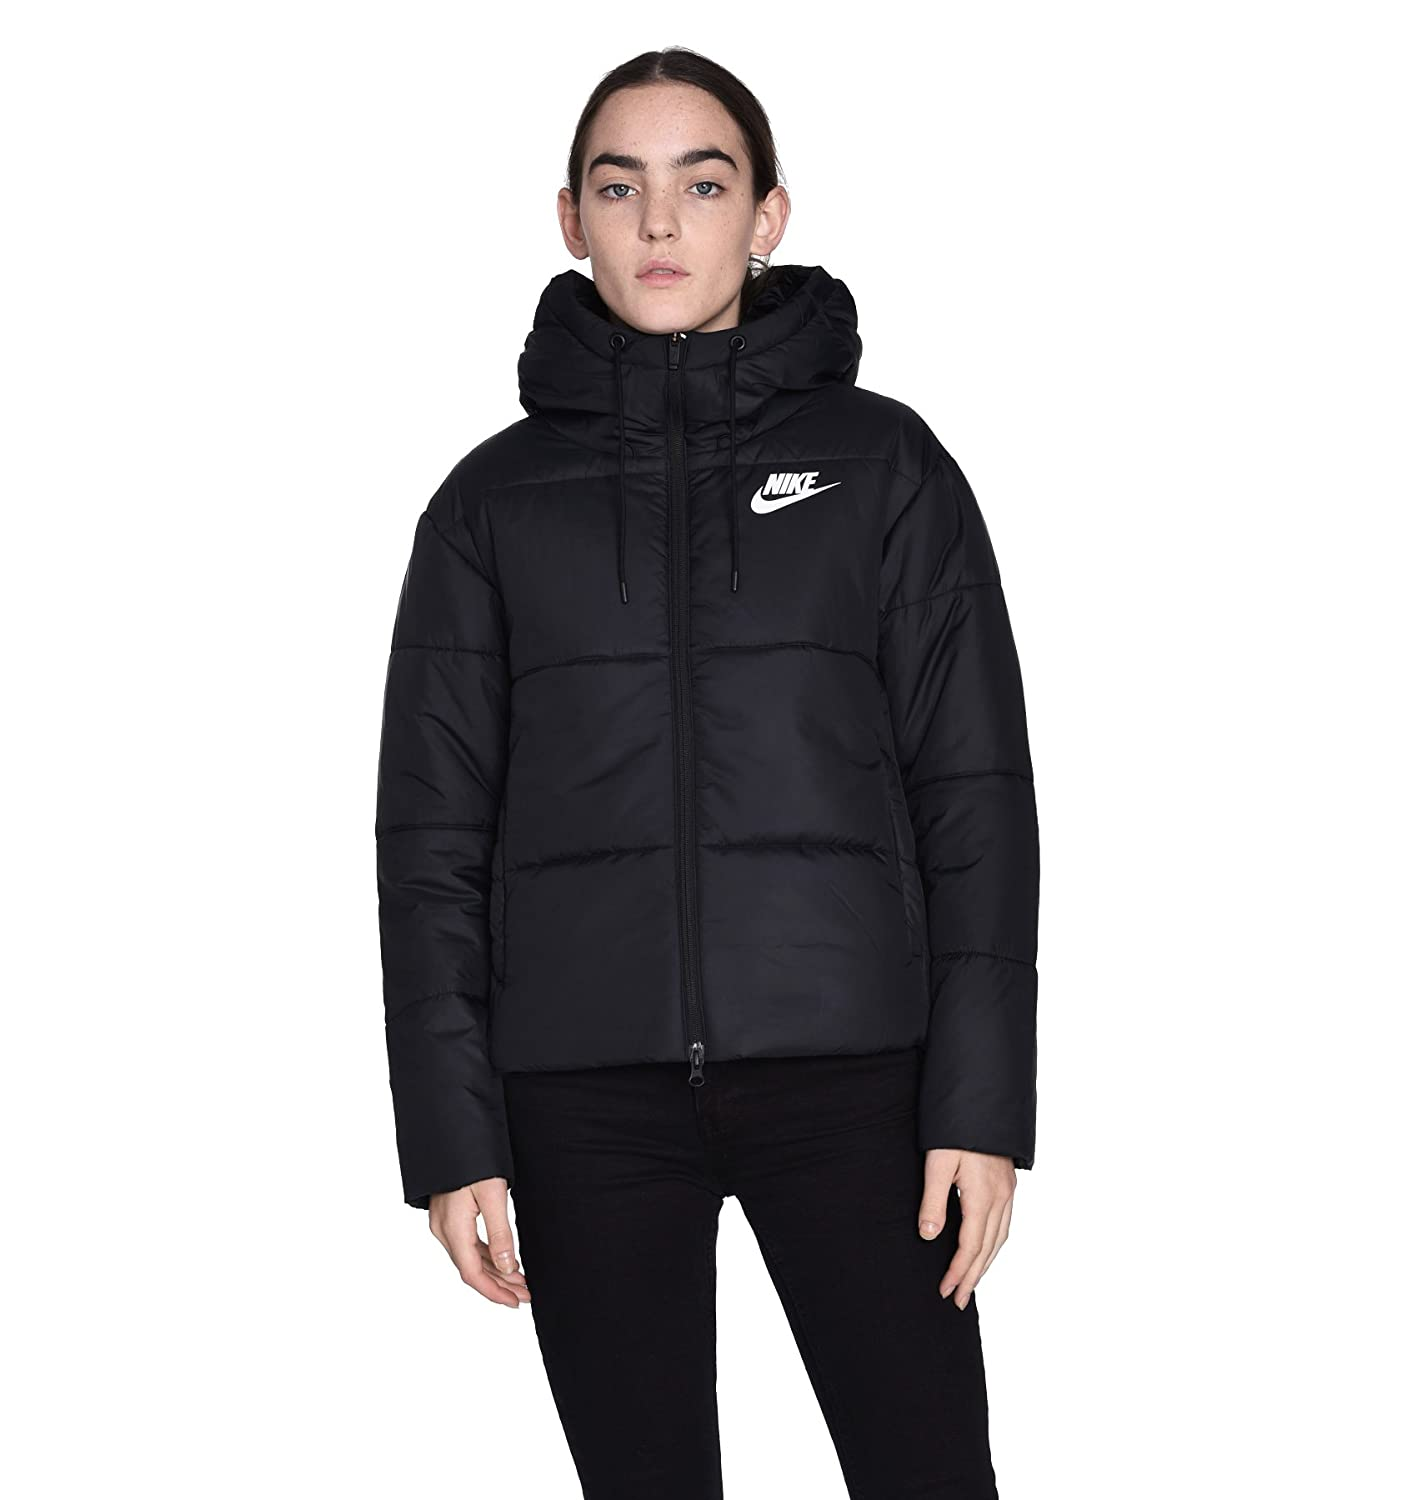 869258 Women's Synthetic Fill Nike Sportswear Jacket 010 qVUpMGSz